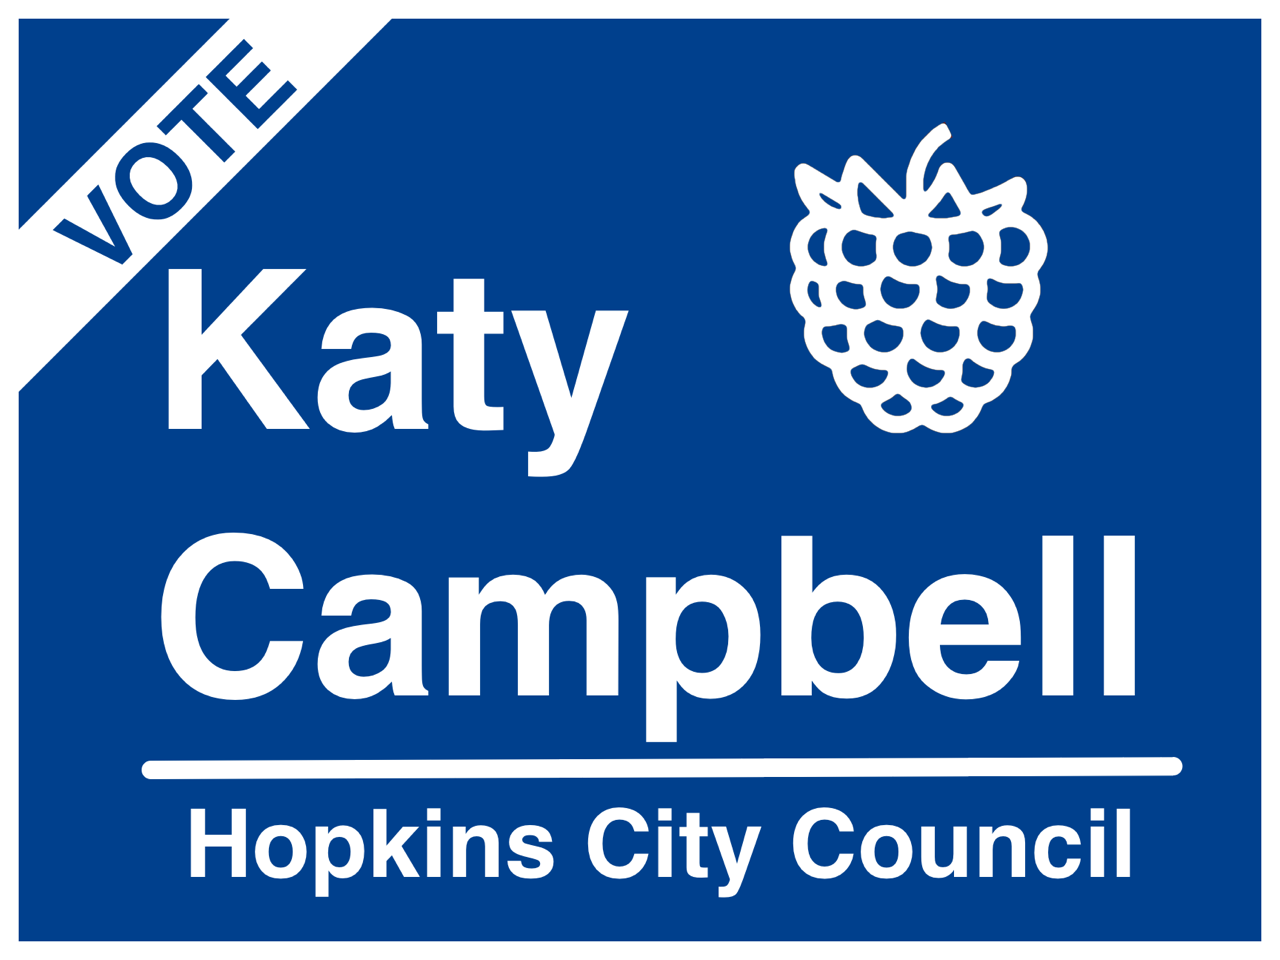 Katy Campbell for Hopkins